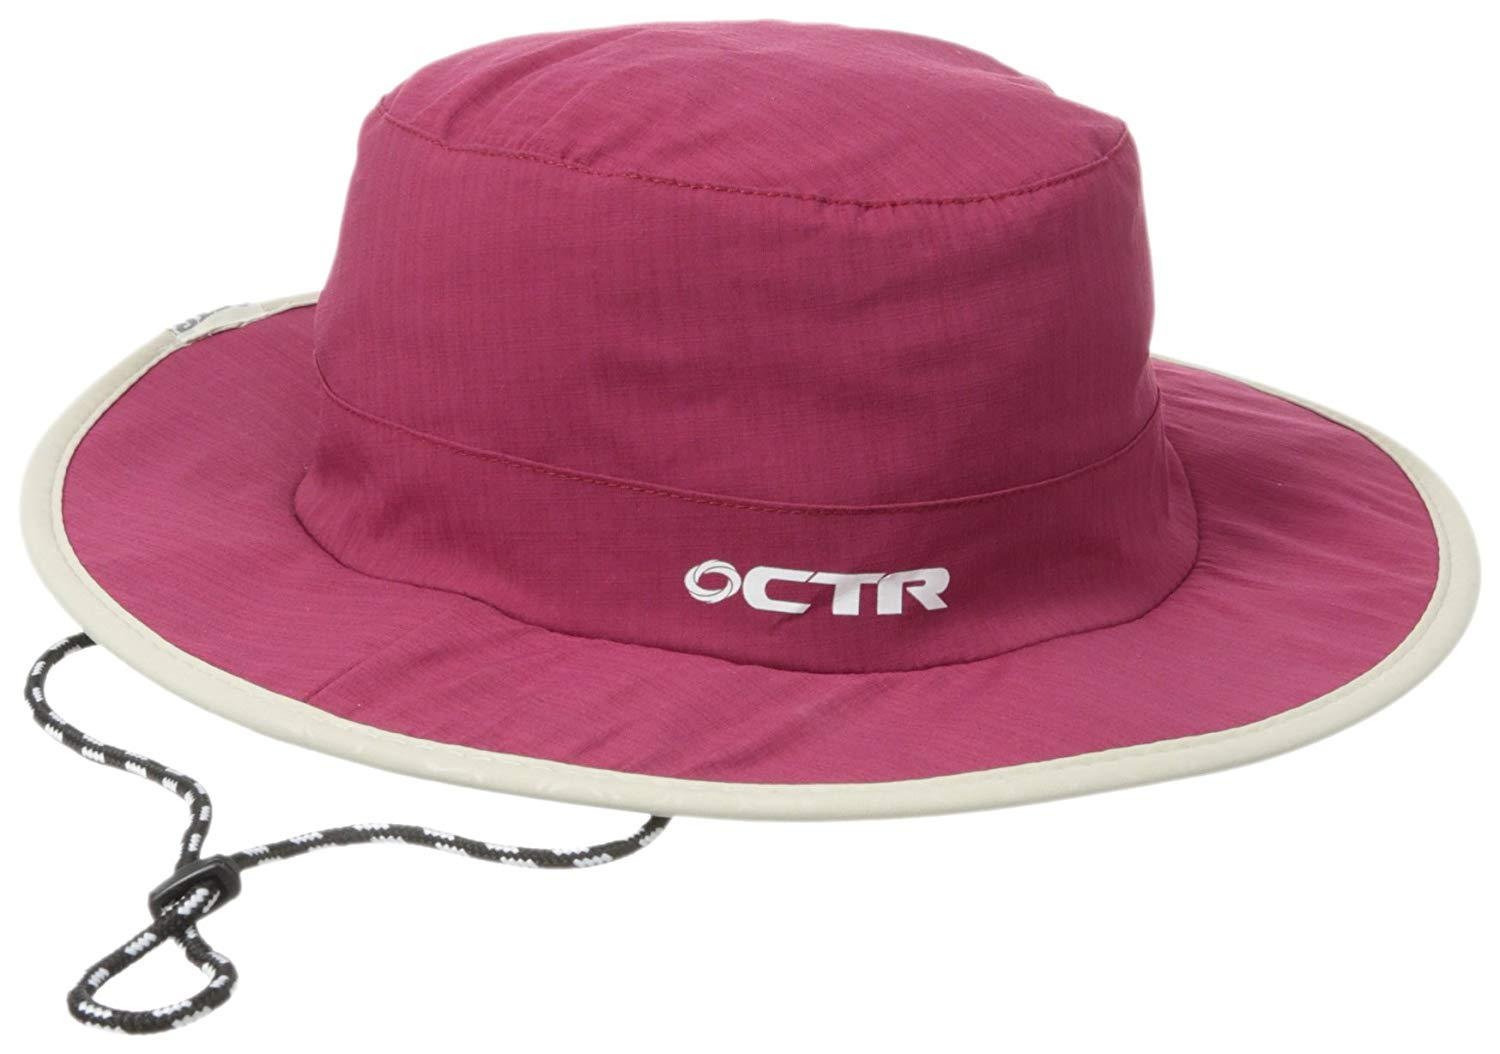 Buy Chaos - CTR Womens Summit Day Hat in Cheap Price on Alibaba.com d90e06a47d90